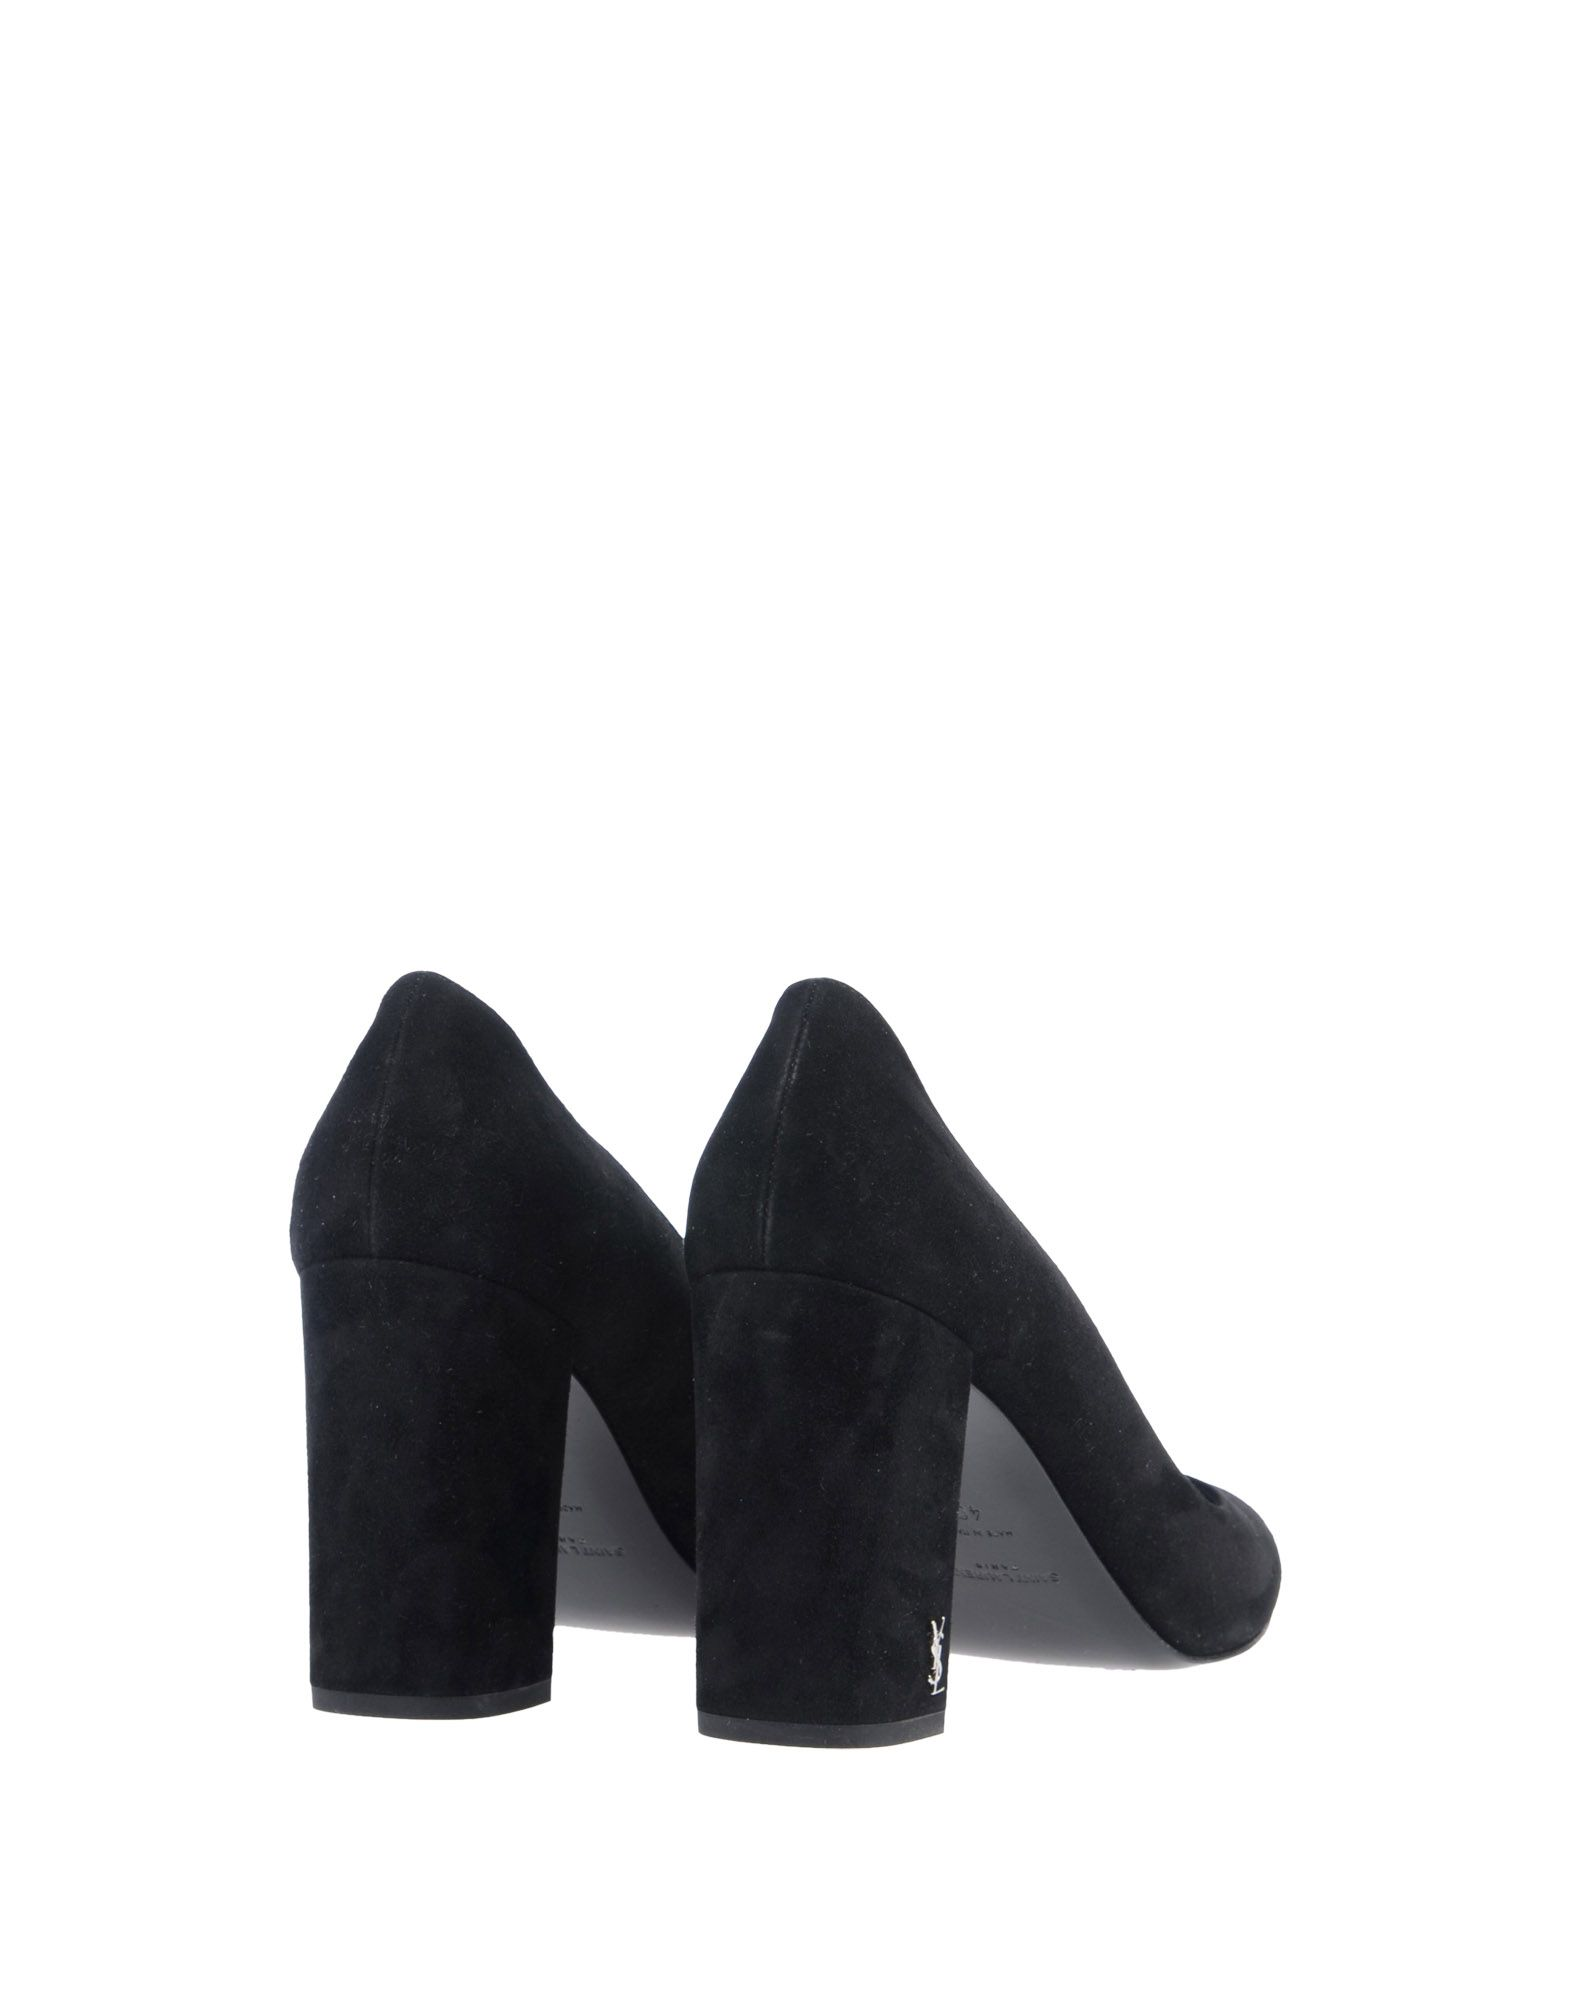 Escarpins Saint Laurent Femme - Escarpins Saint Laurent sur